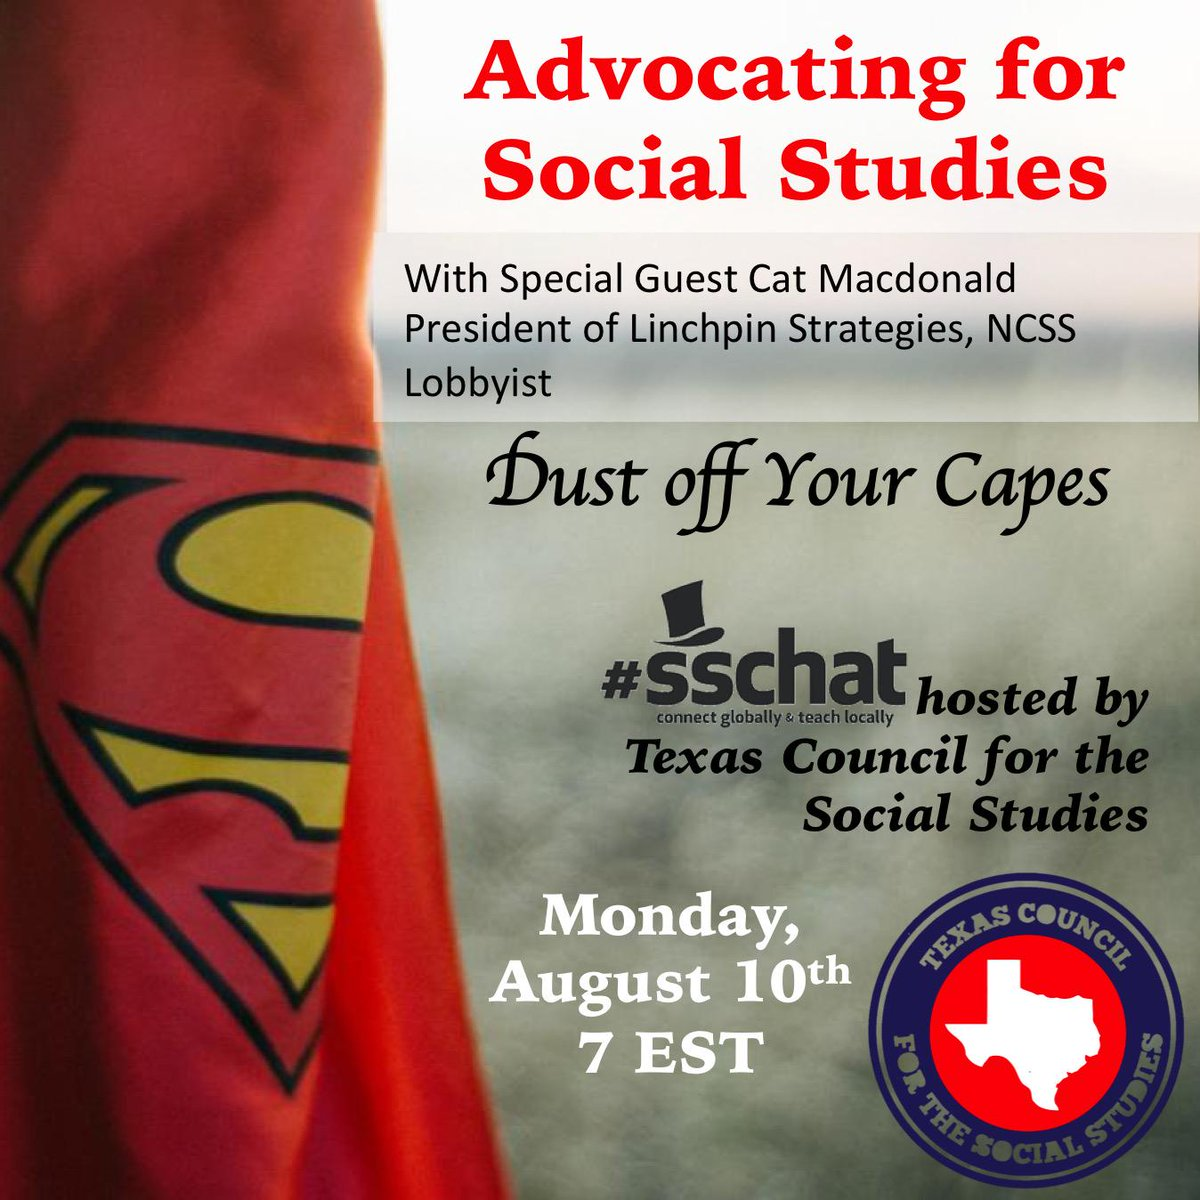 #ESEA will be in Joint Committee learn how to make your voice heard. #sschat http://t.co/RyU0jZBbpJ